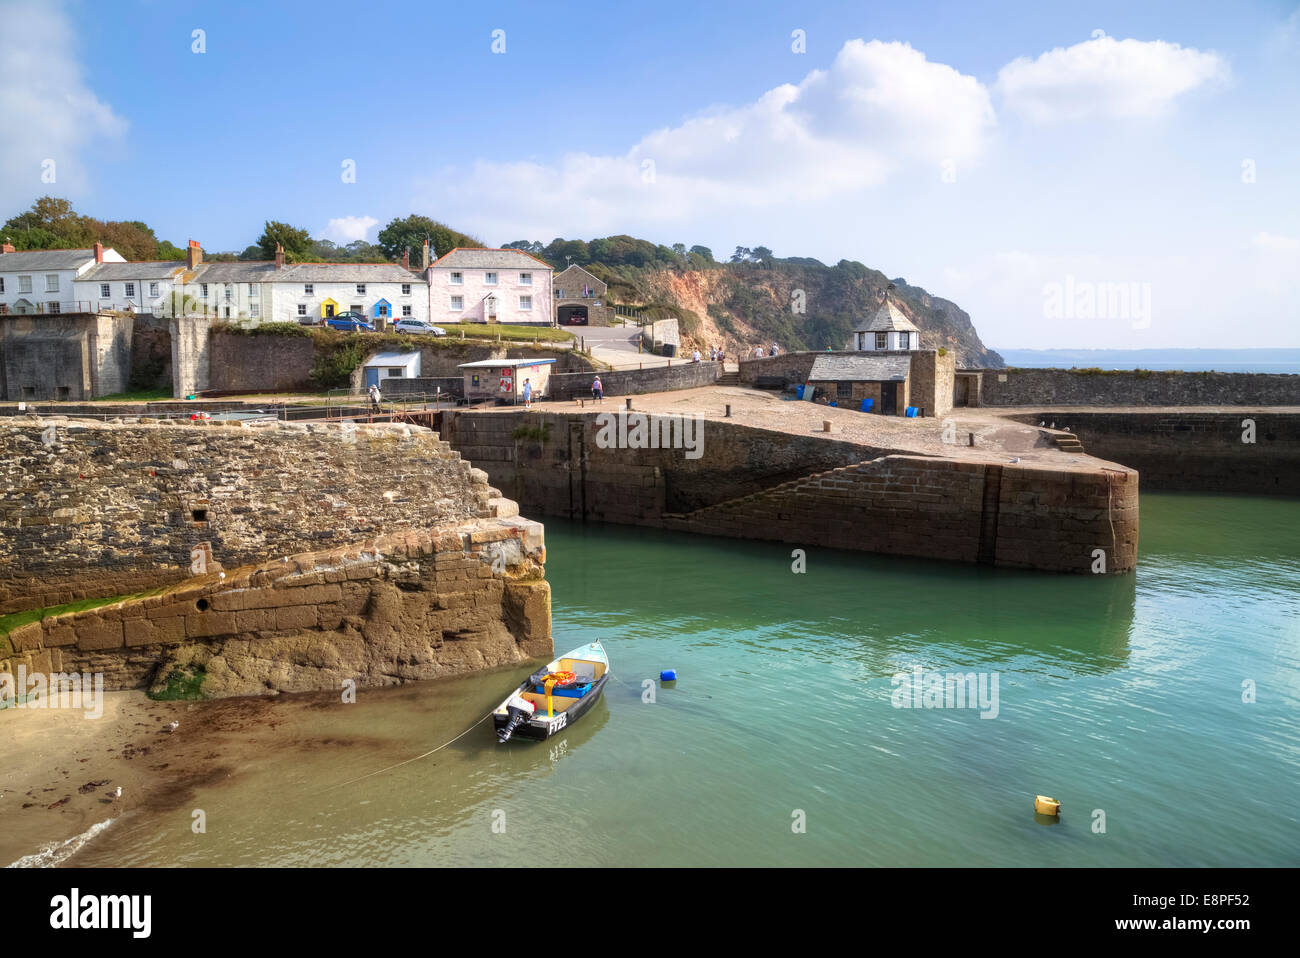 Charlestown, Cornwall, England, United Kingdom - Stock Image